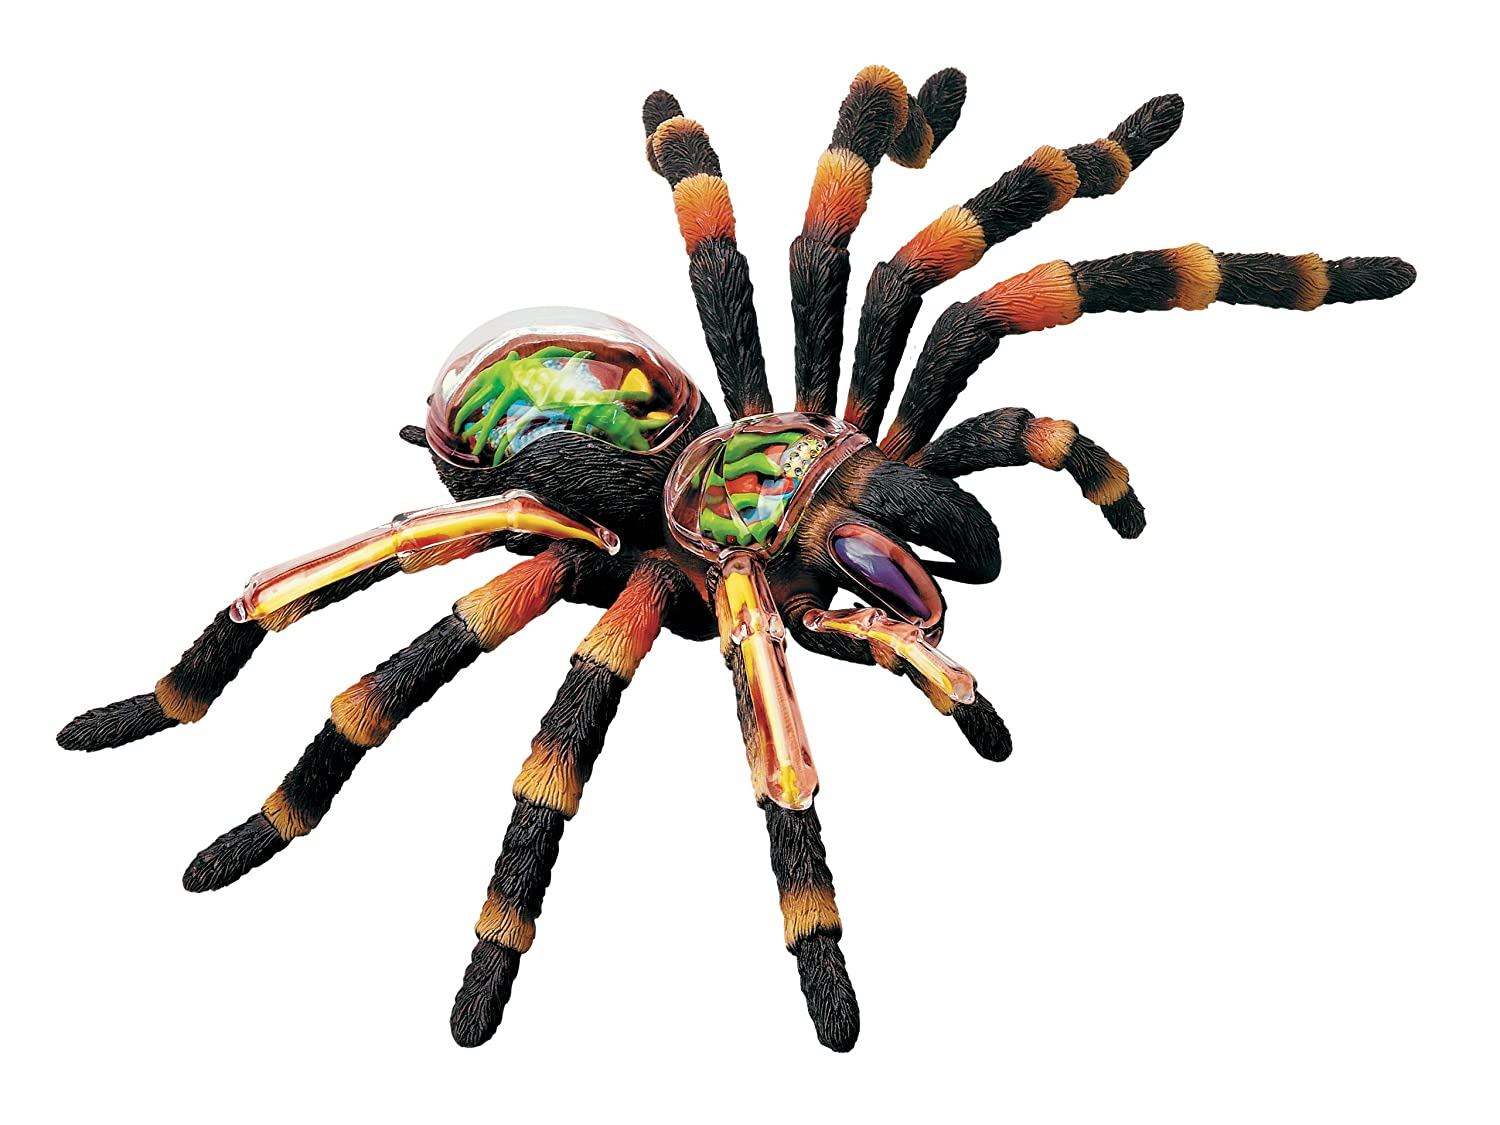 Revell X Ray Tarantula Spider Anatomy Models Amazon Toys Games